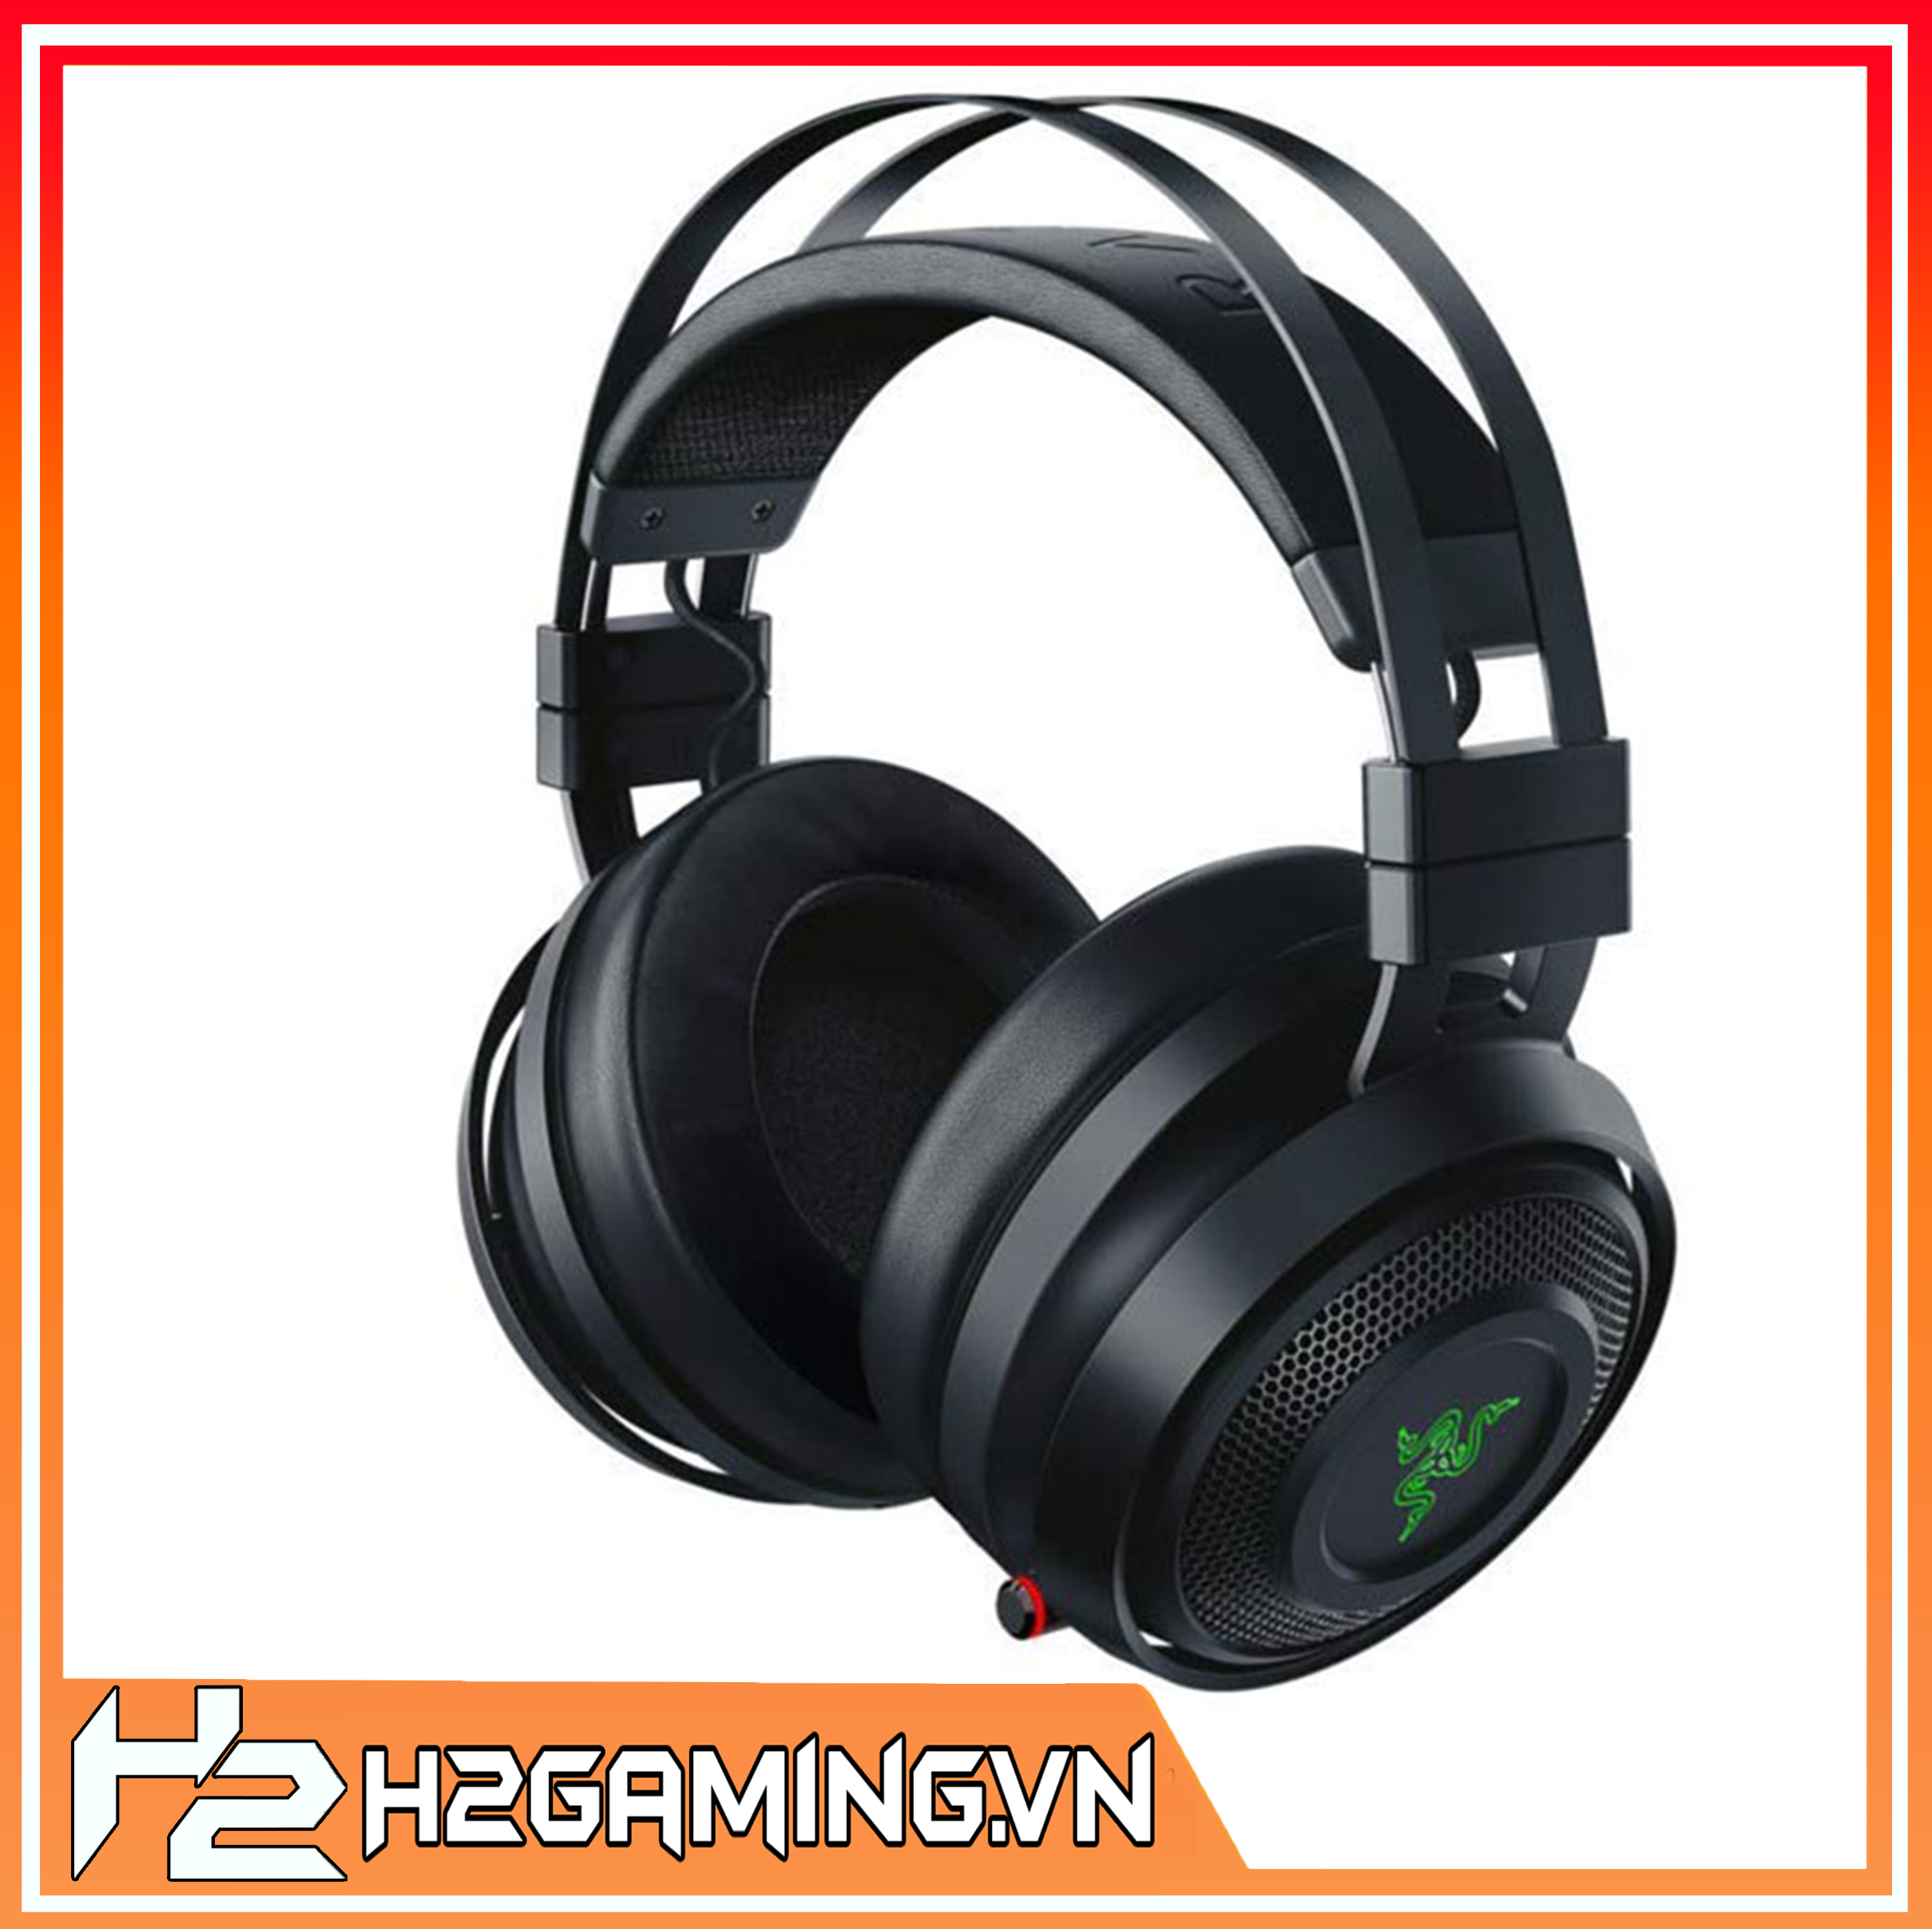 Razer_Nari_-_Wireless_Gaming_Headset_2